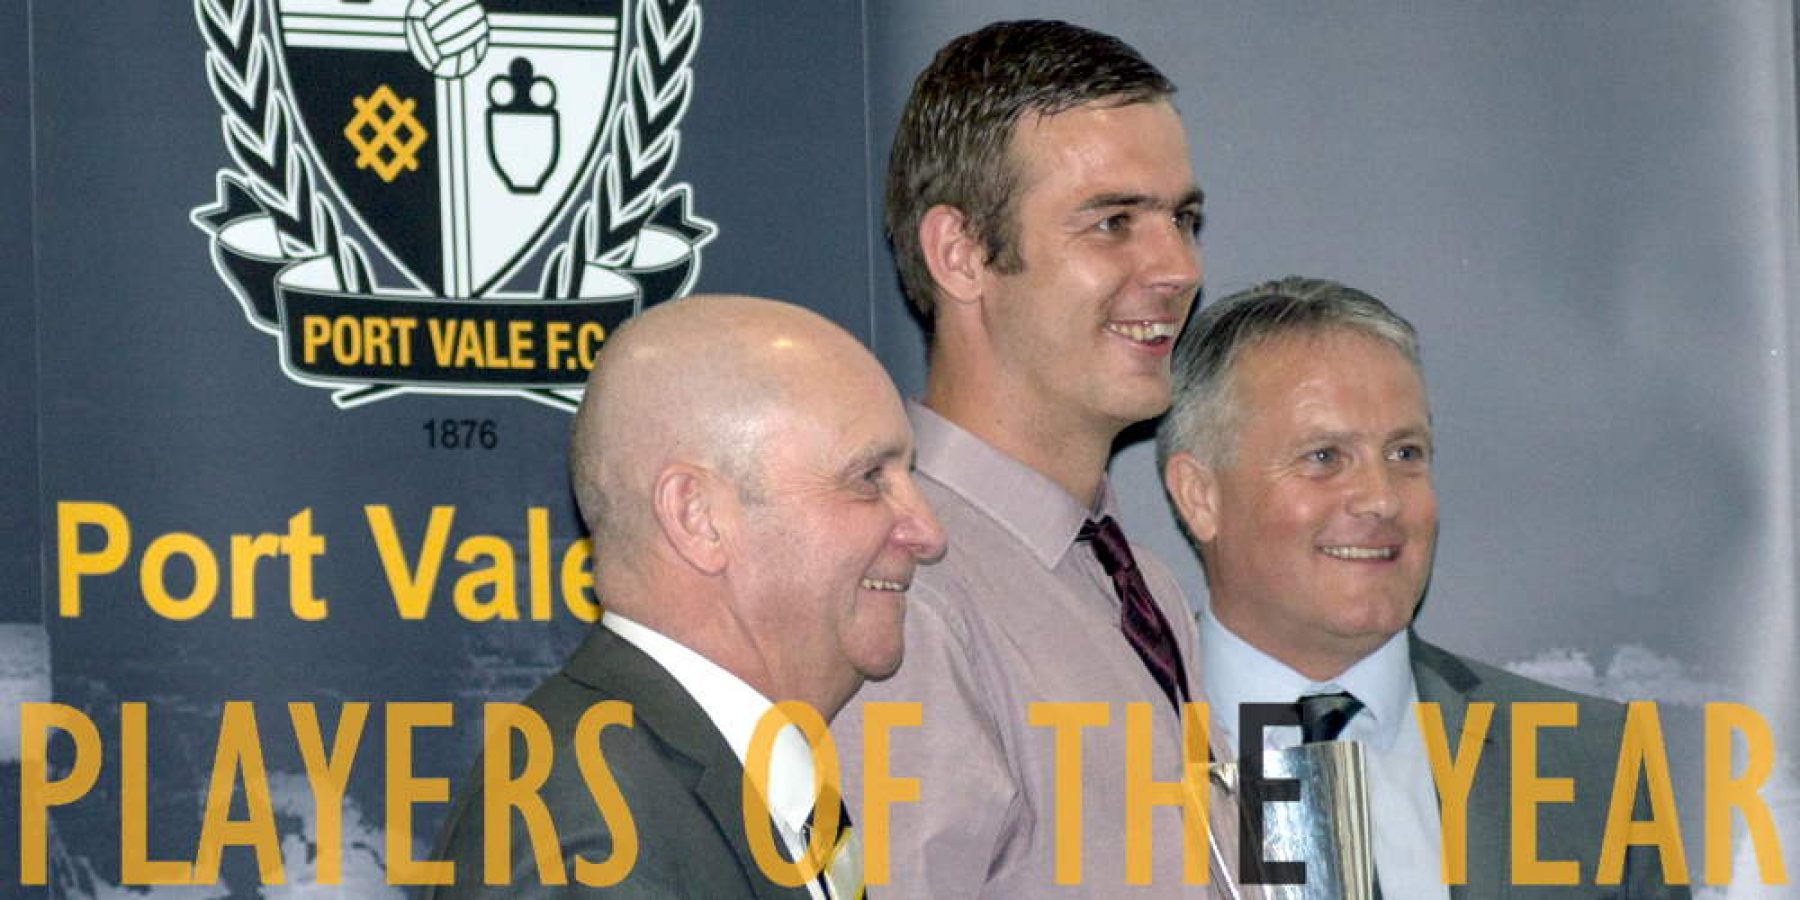 Port Vale players of the year - Tom Pope receives one of his three awards